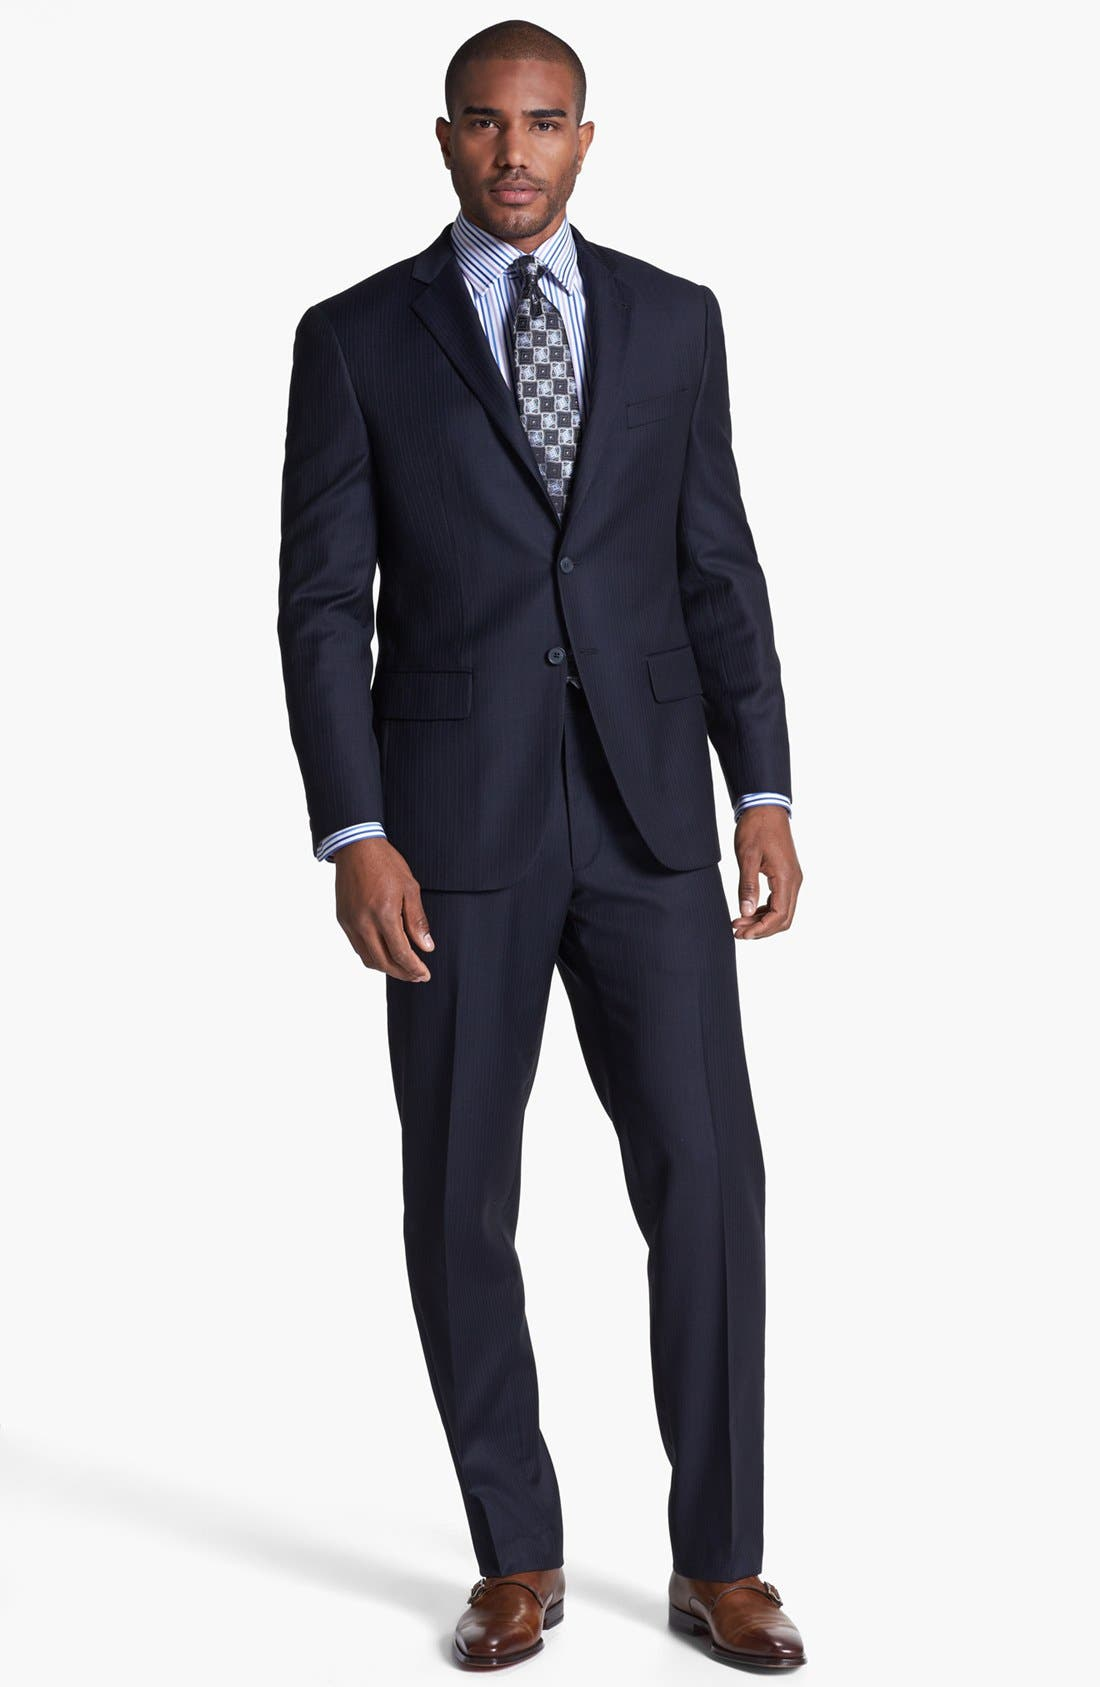 Main Image - Joseph Abboud Suit & David Donahue Dress Shirt